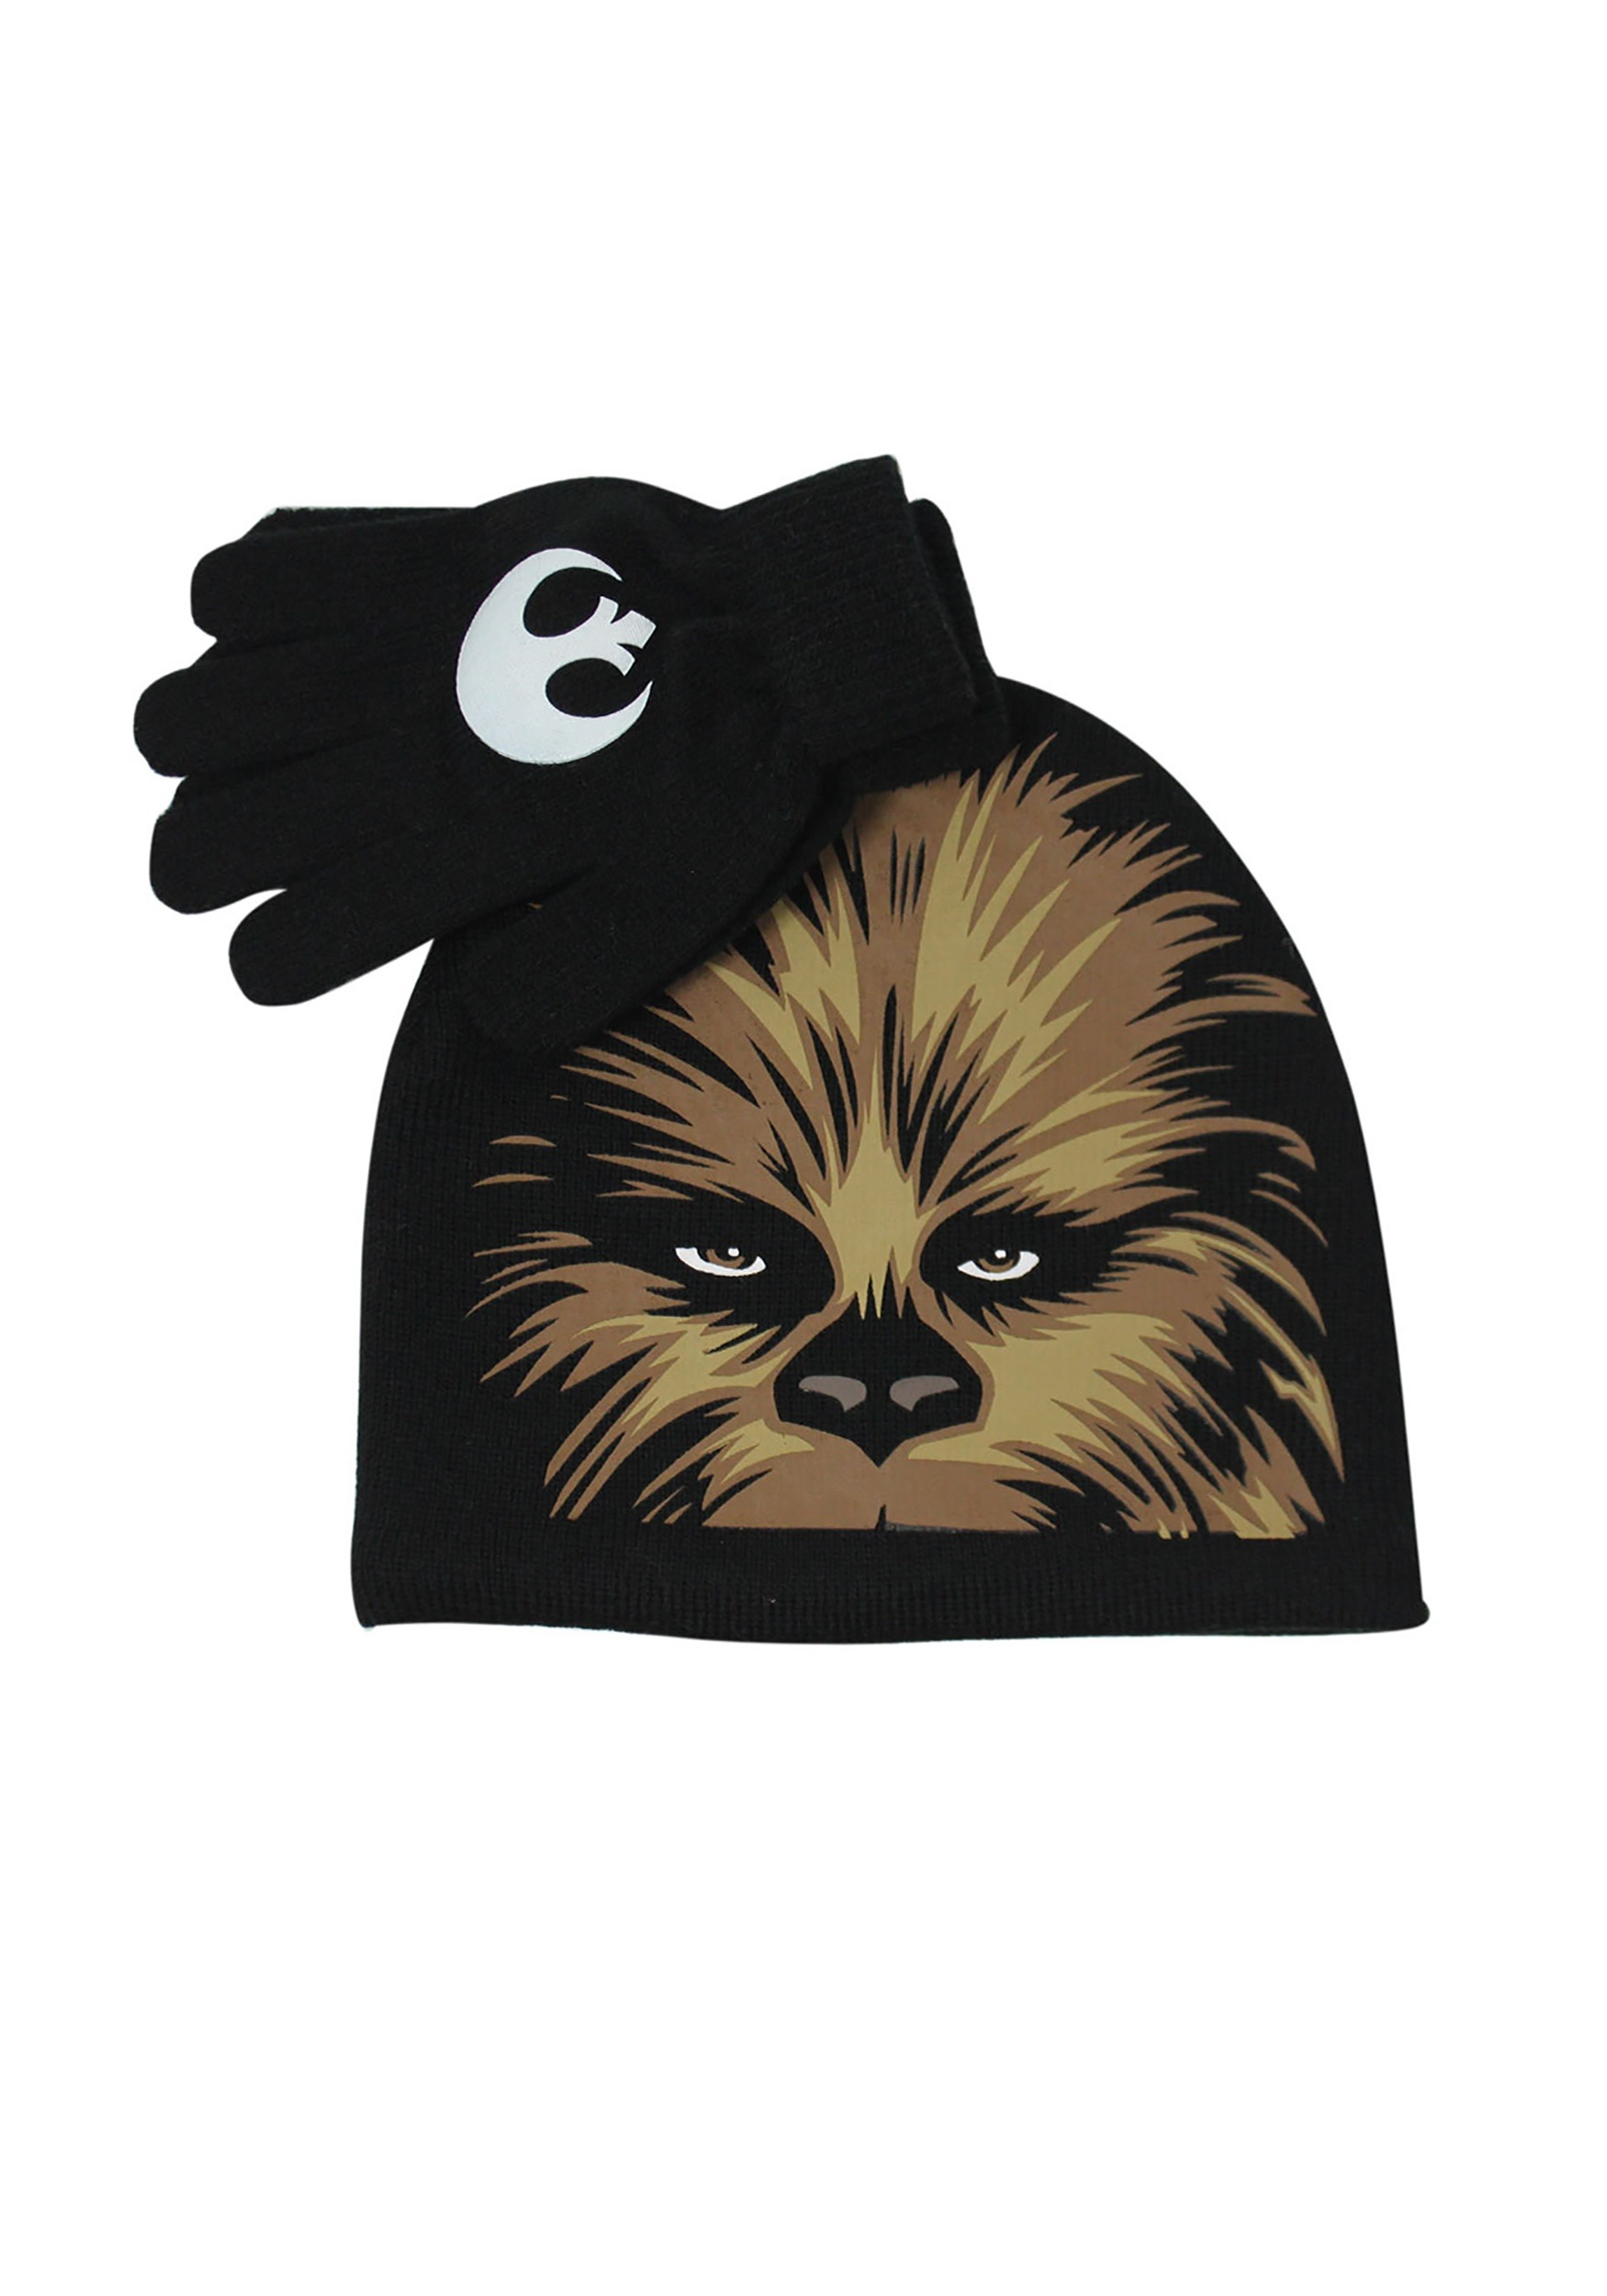 Kids Chewbacca Big Face Hat & Glove Set